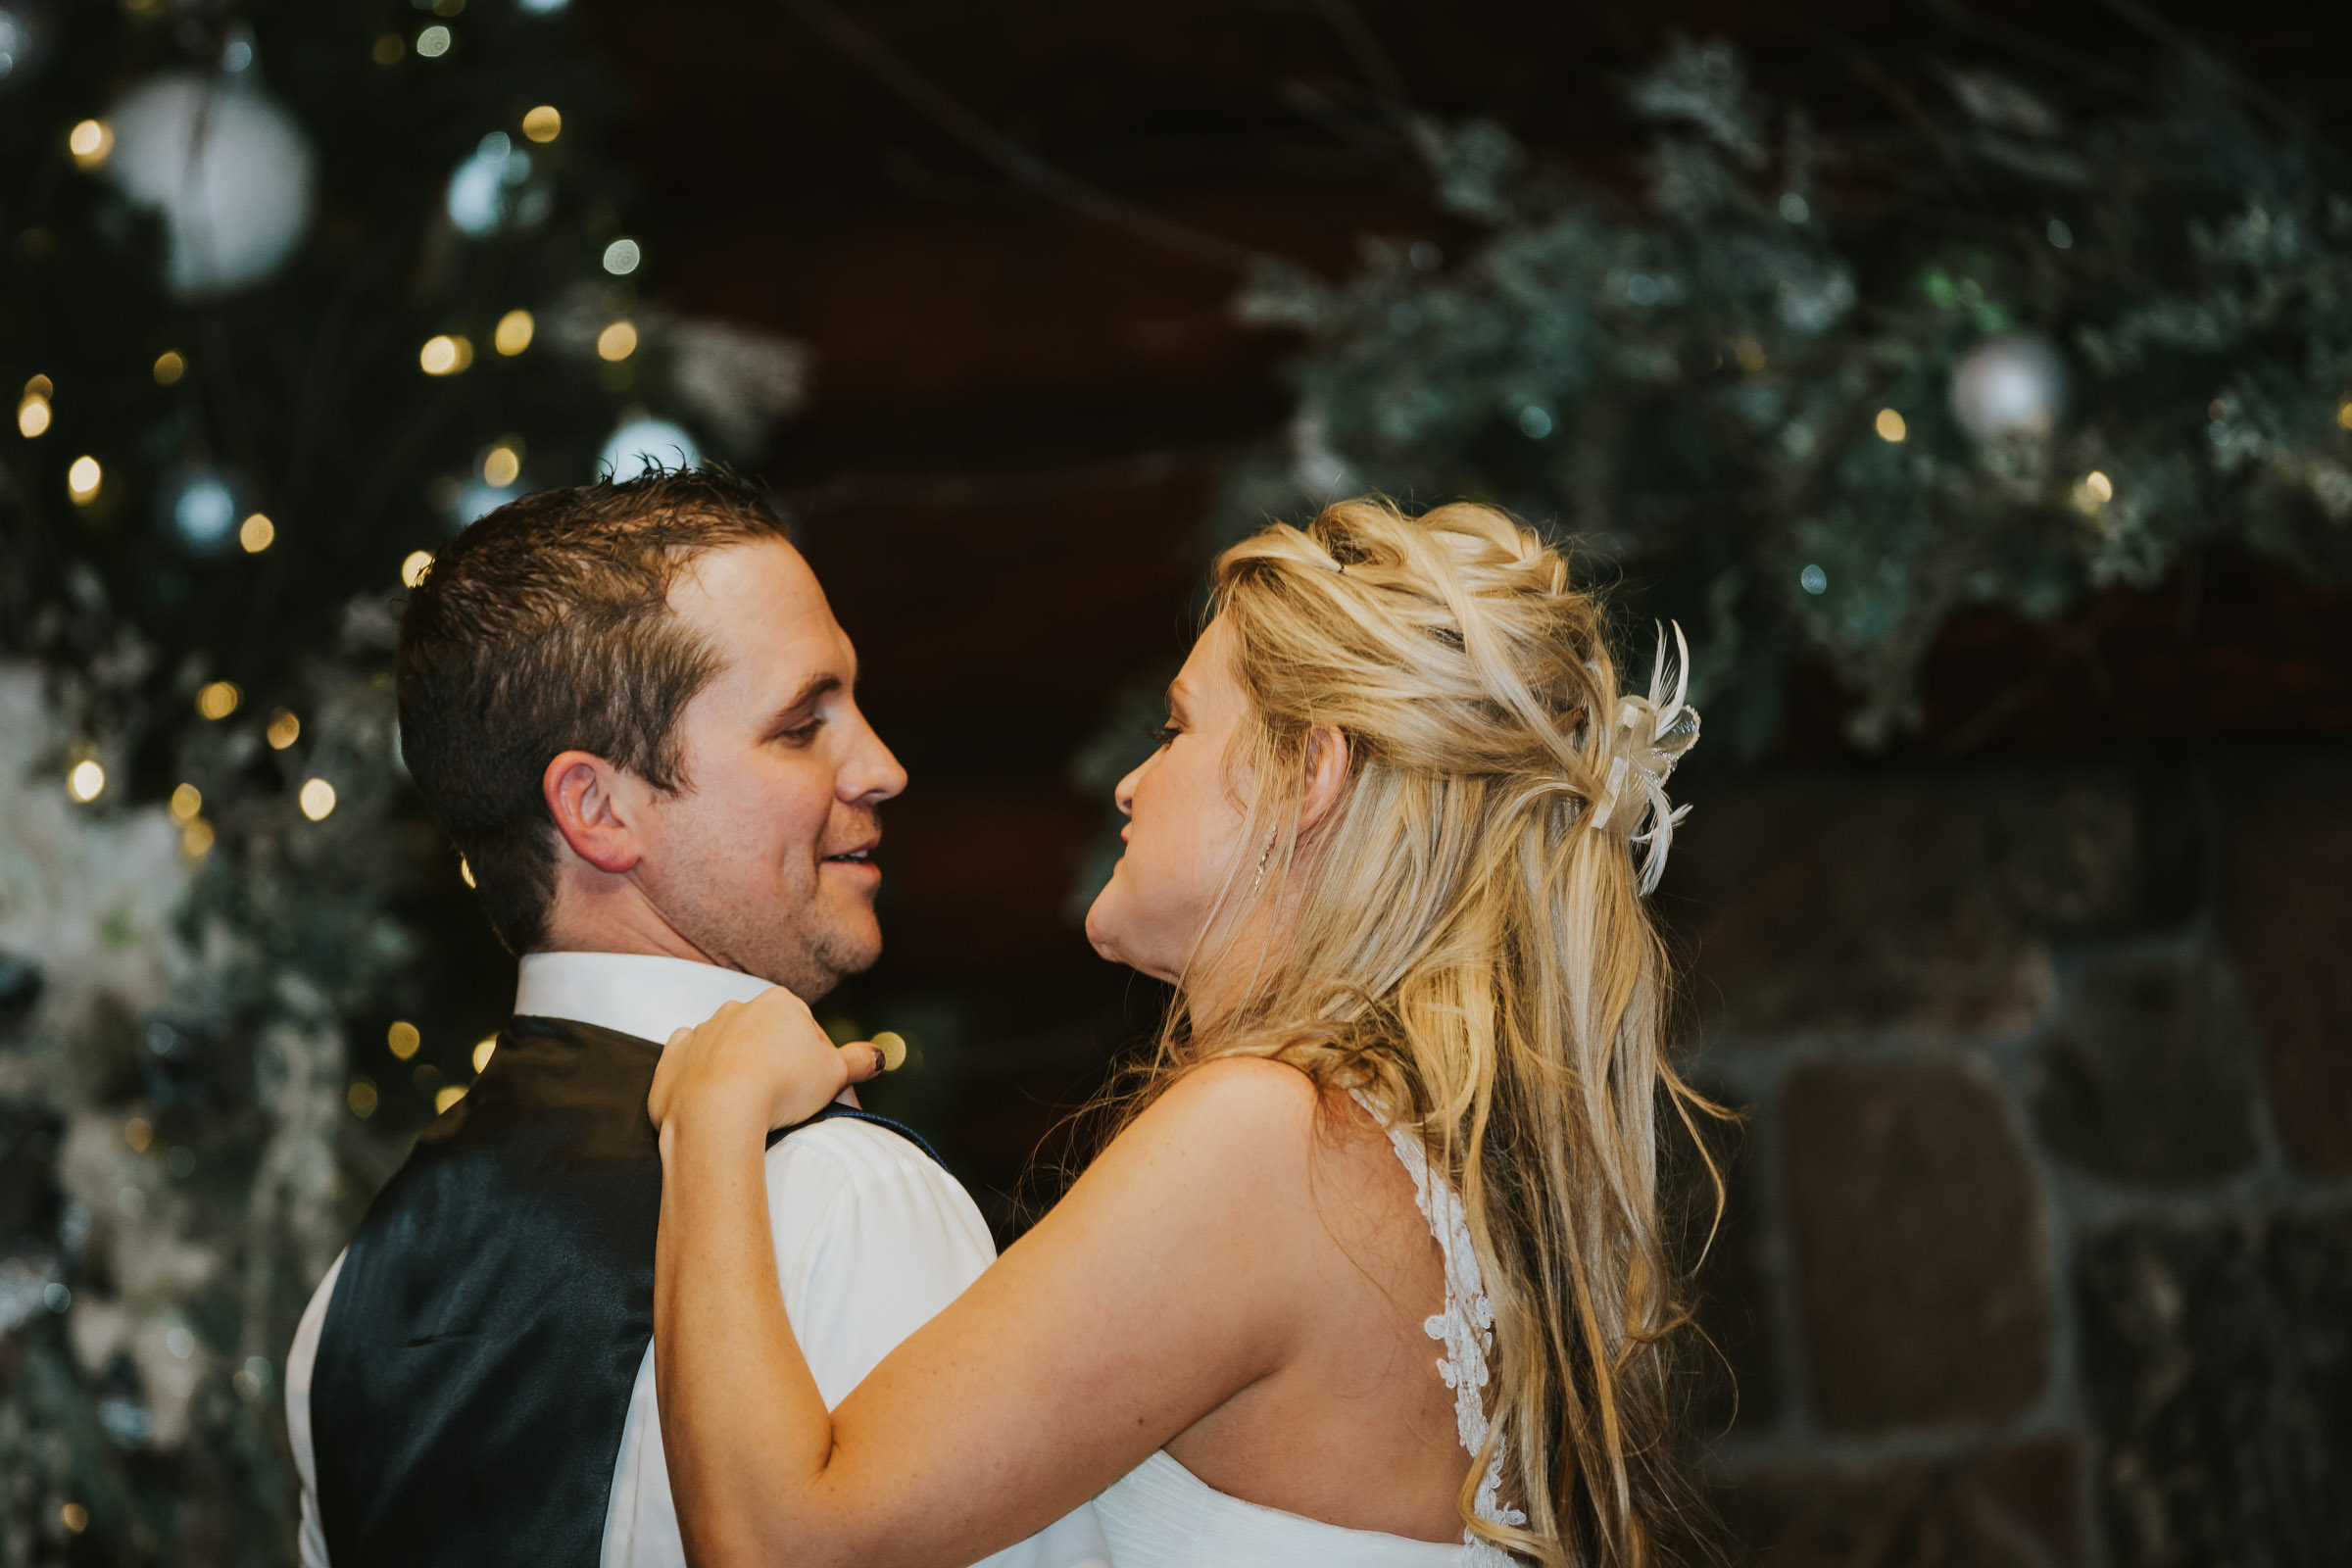 Schrumannwedding__MGL6172_dec102016.jpg